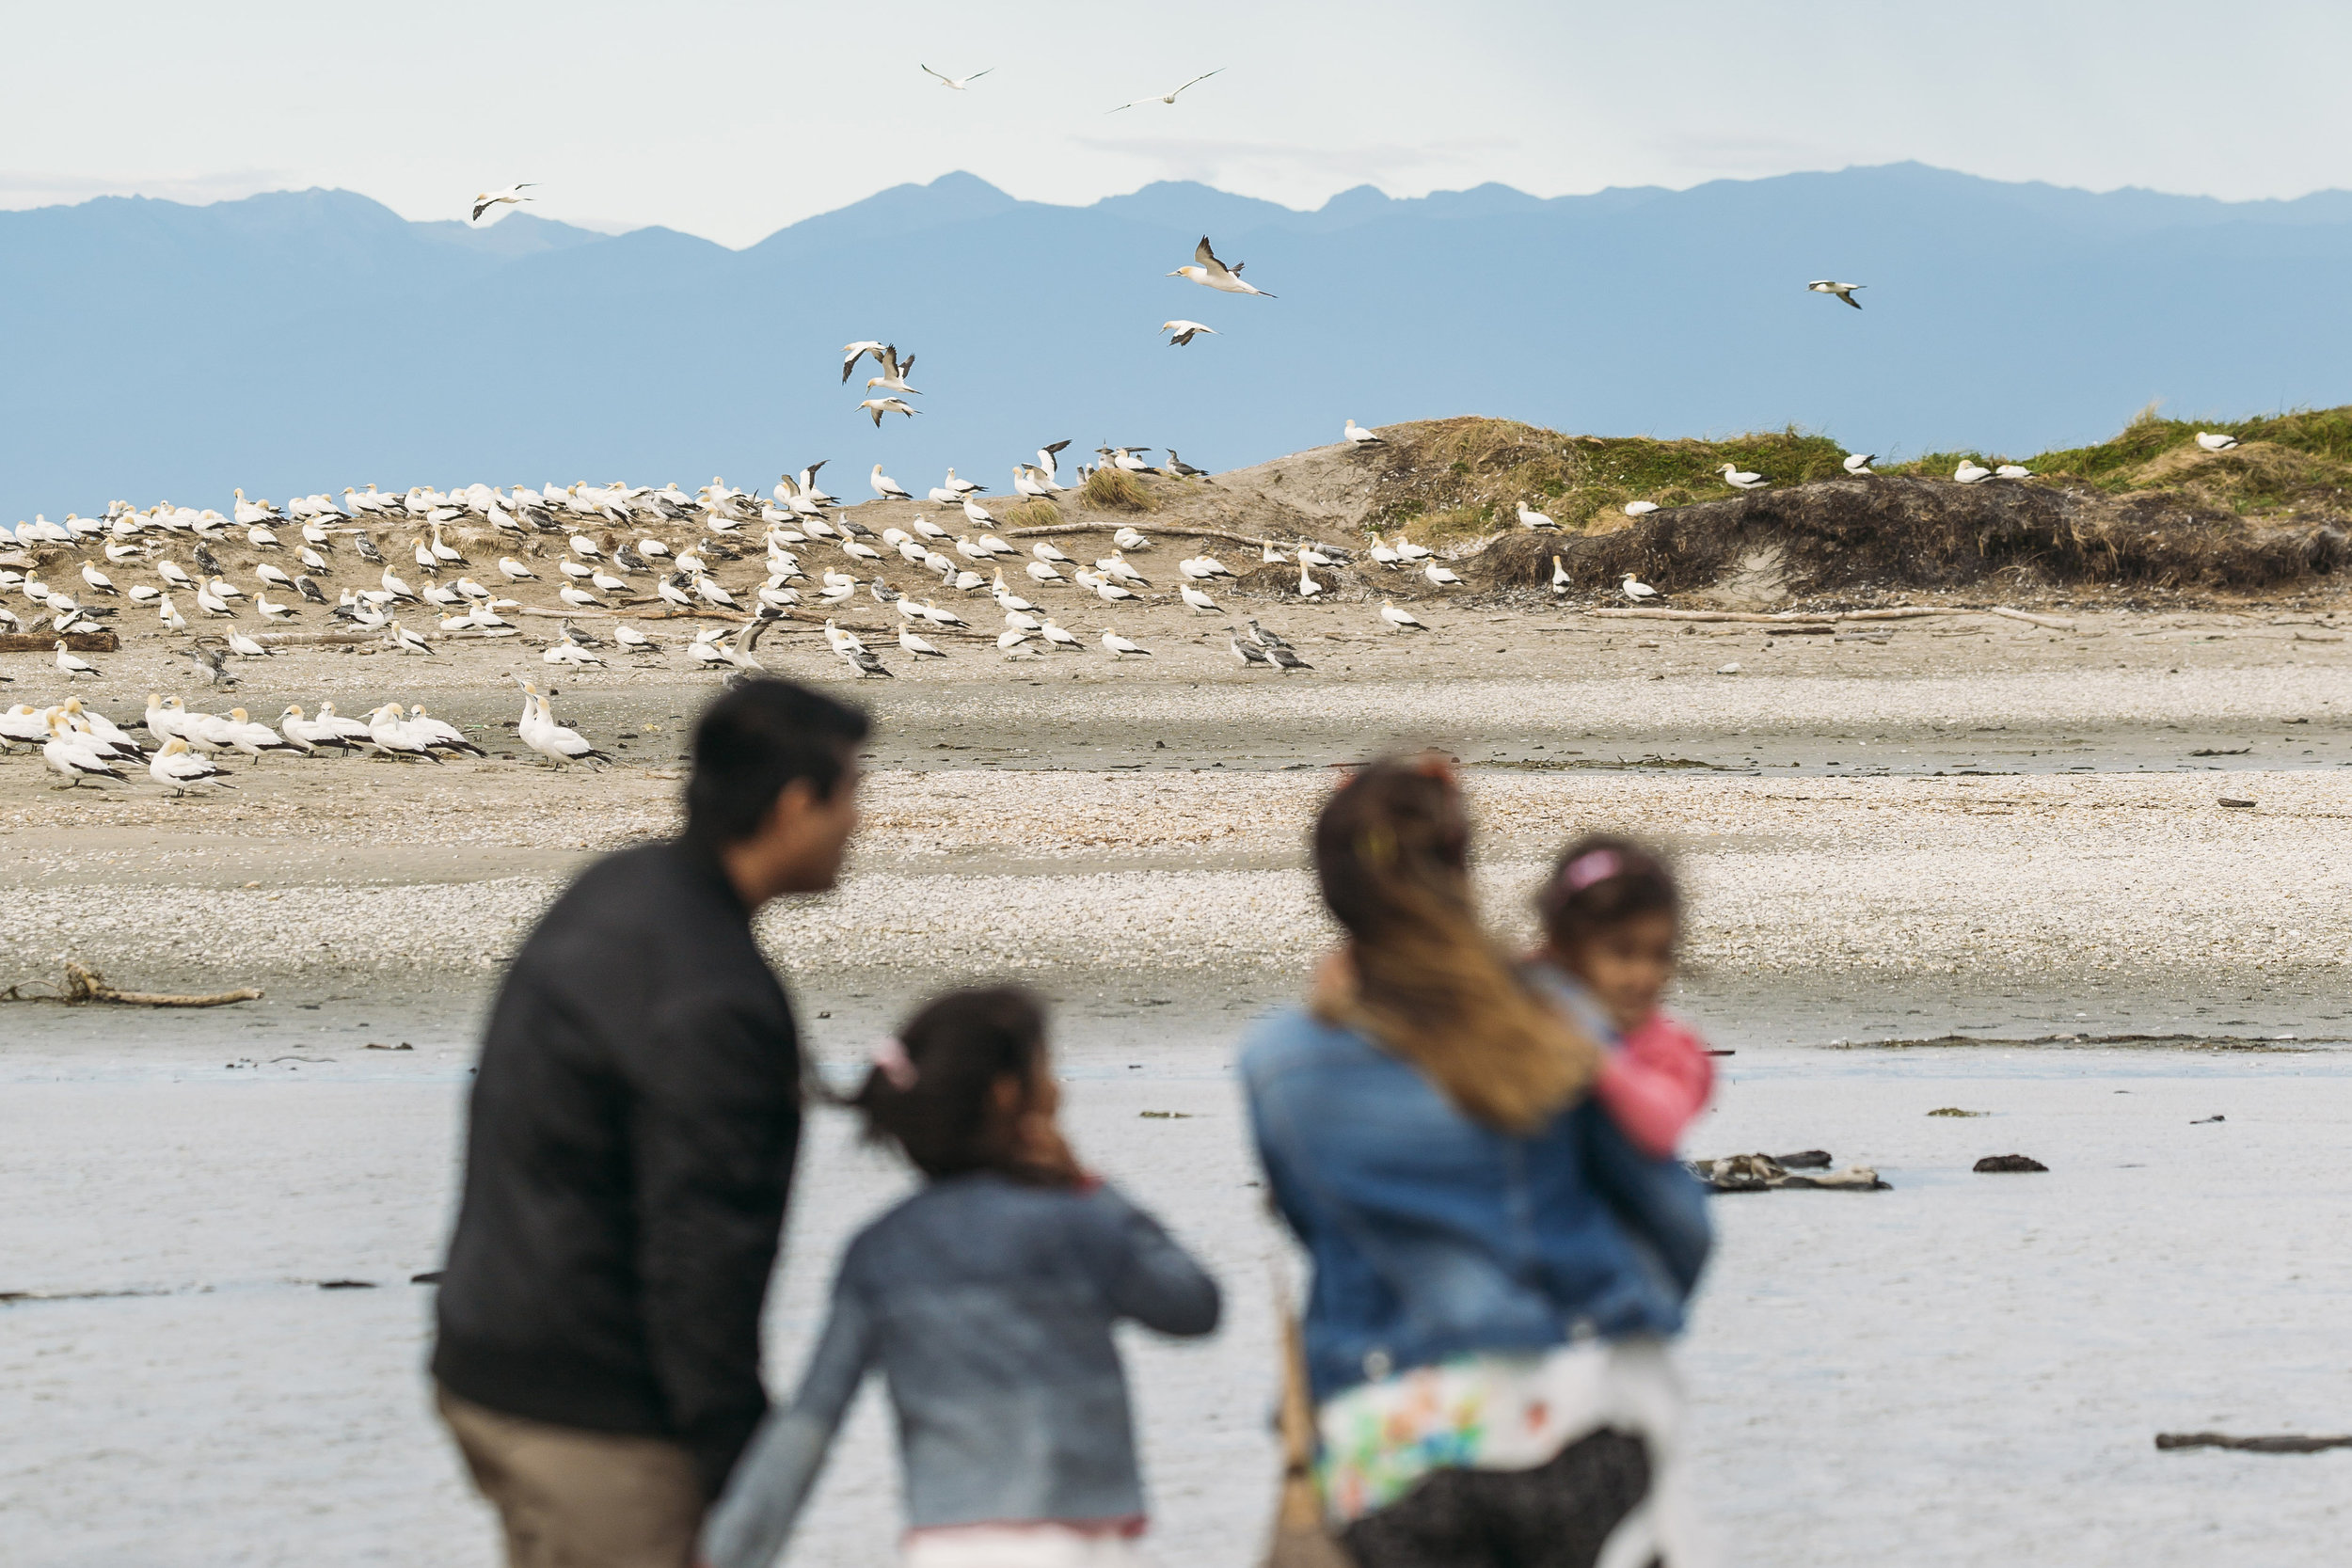 Watch sea birds, seals and other sea creatures in their natural habitati at Wharariki Beach and Farewell Spit in Golden Bay, NZ.